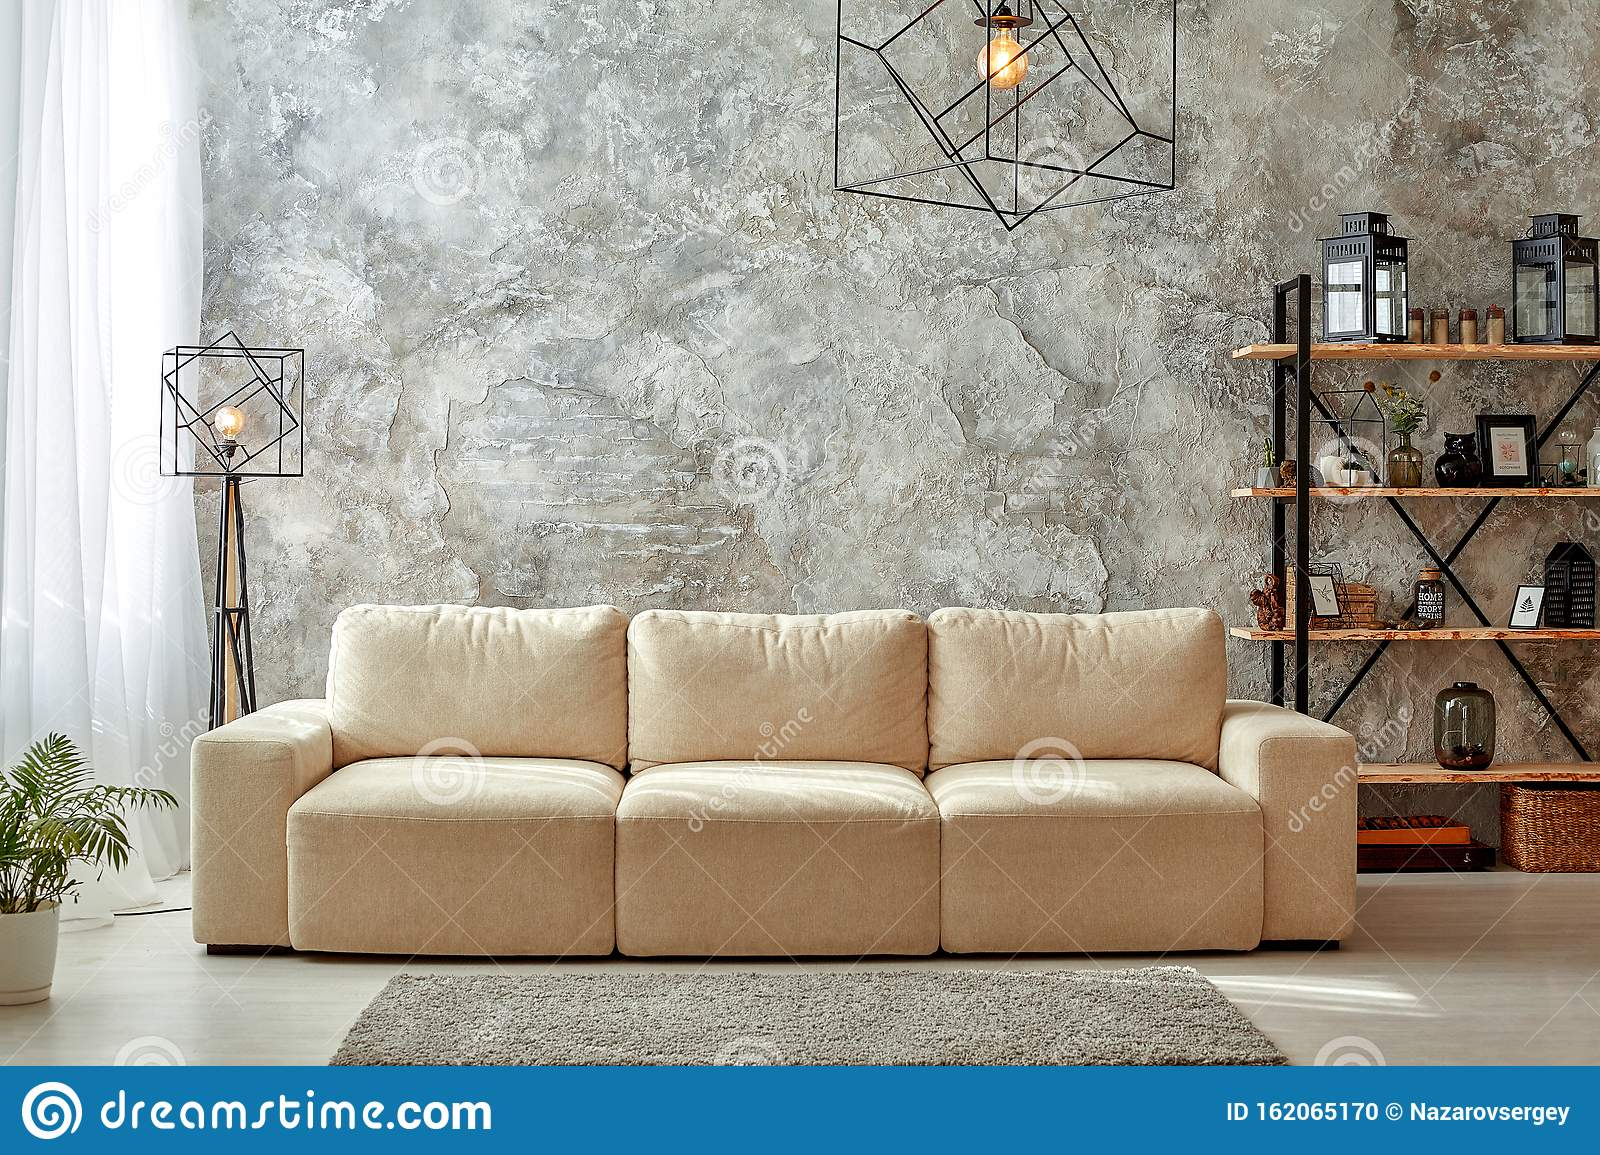 Modern Interior Of Living Room With Gray Walls Beige Sofa Floor Lamp And Chandelier Light Carpet Shelf With Frames Stock Photo Image Of Loft Laminate 162065170